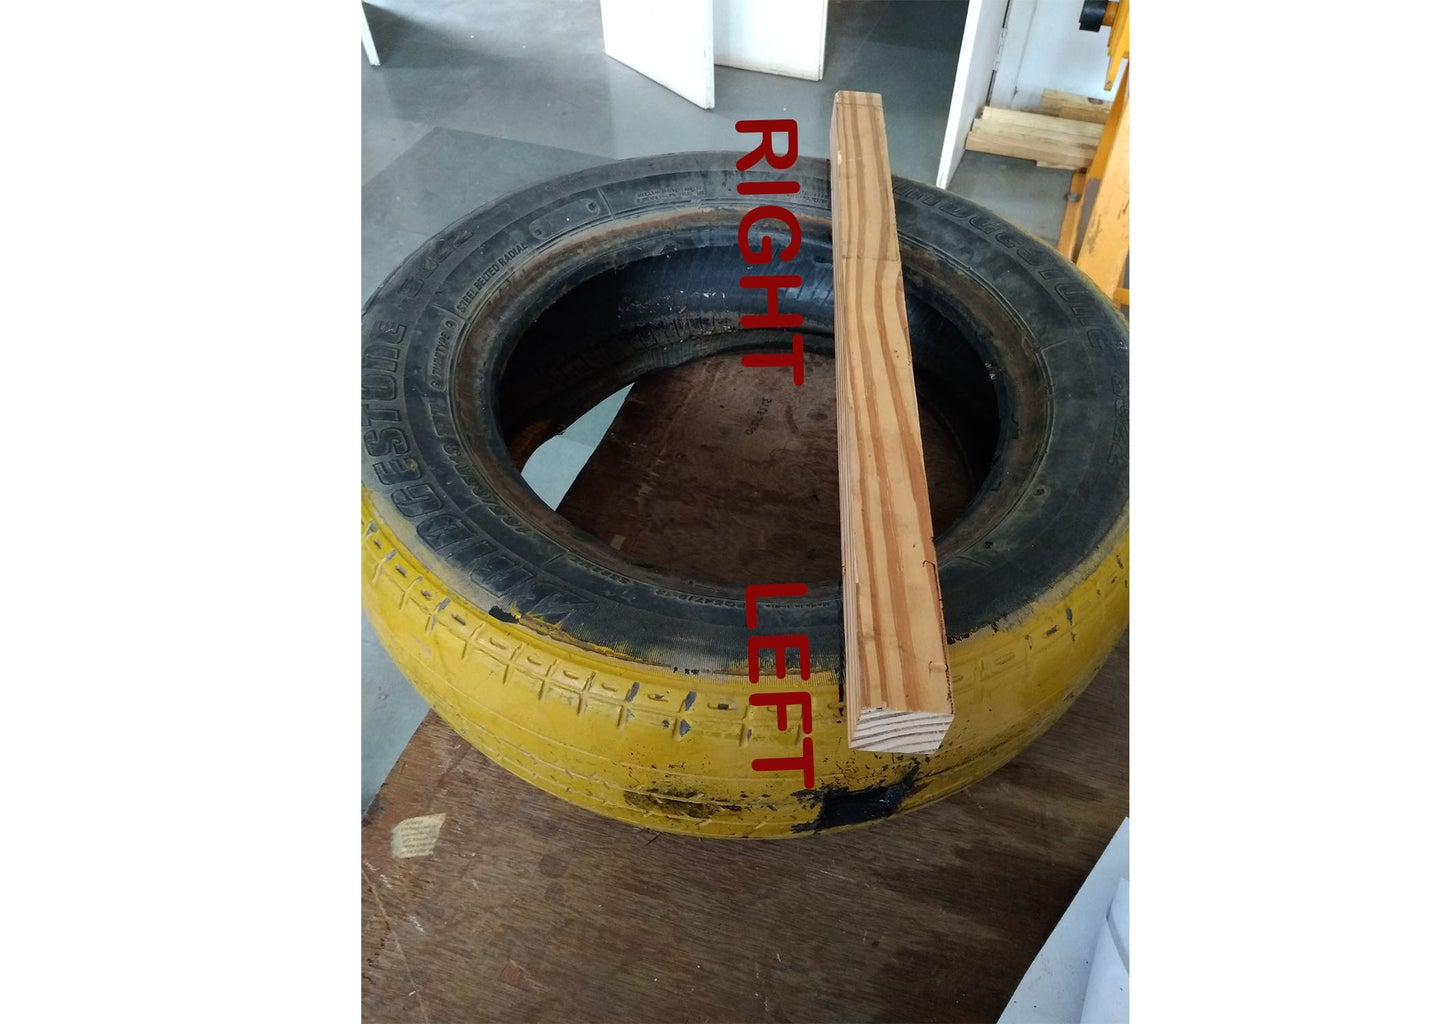 MARKING OF TIRE NO. 1 & 2